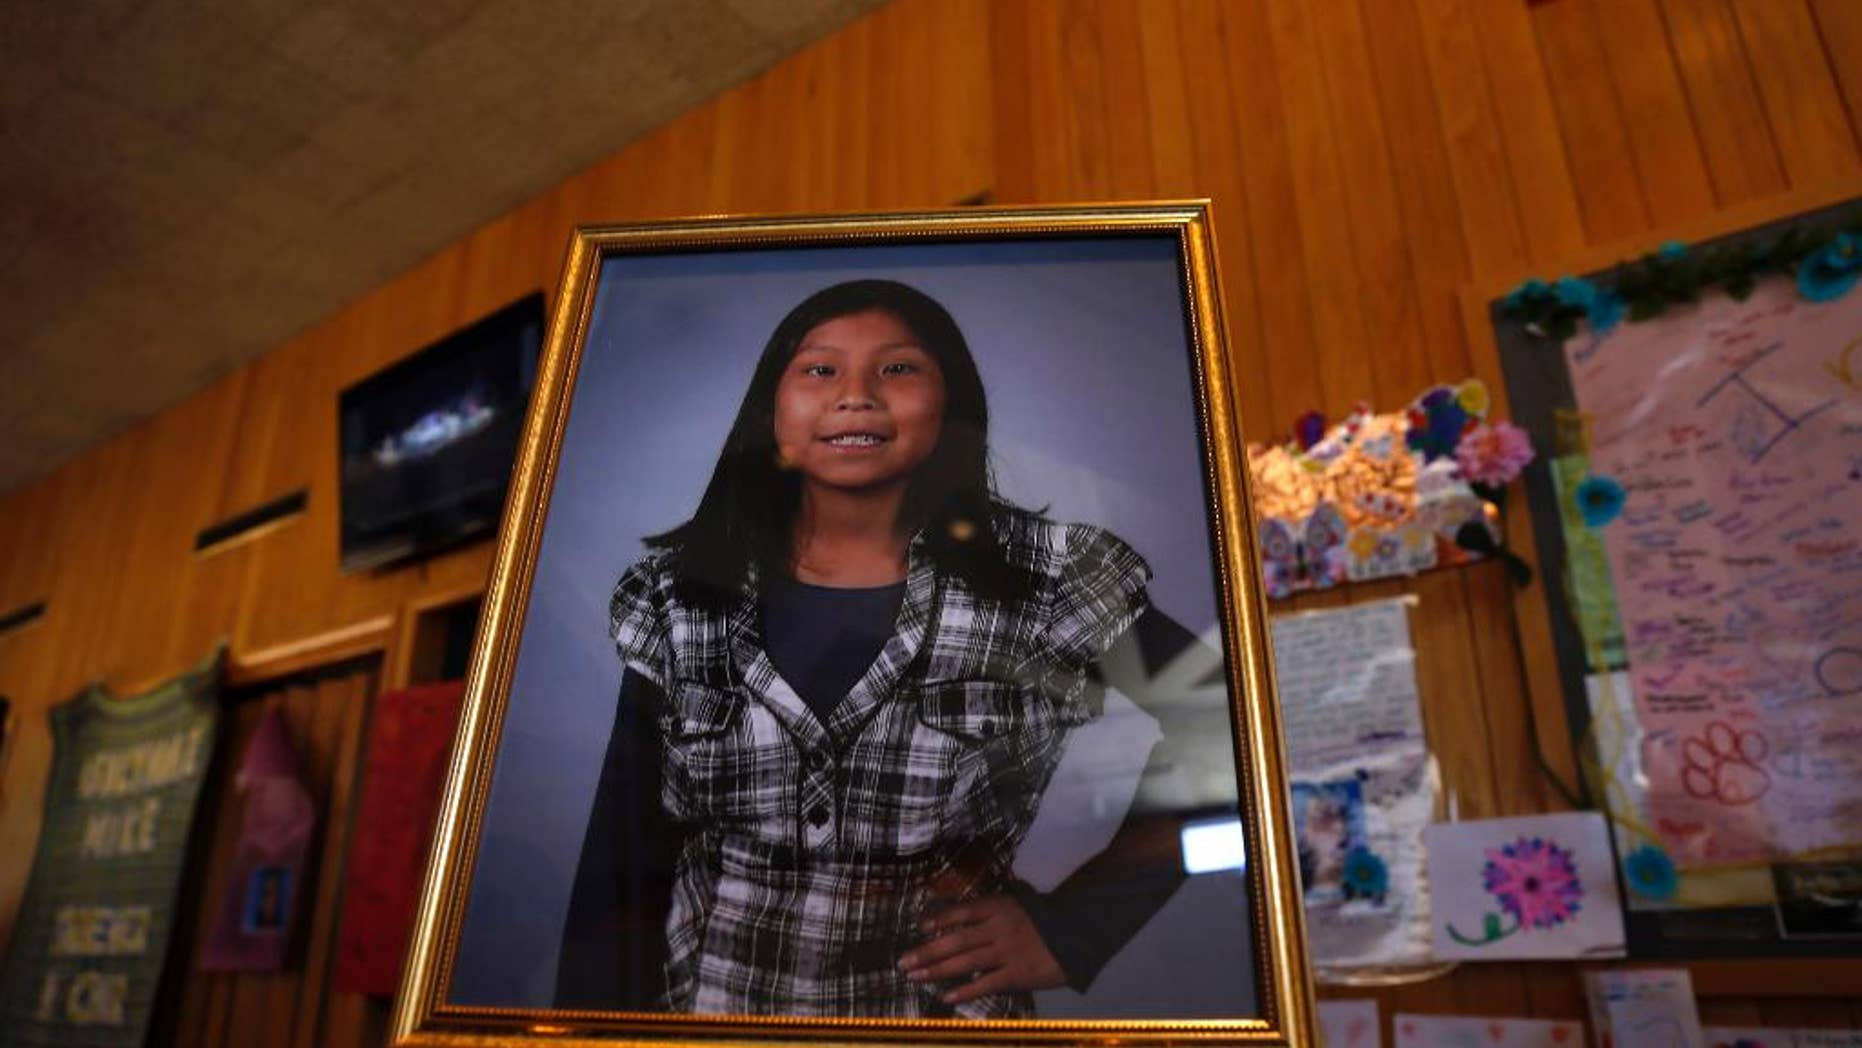 FILE - In this May 6, 2016 file photo a portrait of Ashlynne Mike is on display inside the lobby of the Farmington Civic Center in Farmington, N.M. Mike's father has sued the tribe for failing to have an emergency notification system that he claims would have saved his daughter's life. (Jon Austria  /The Daily Times via AP, File)